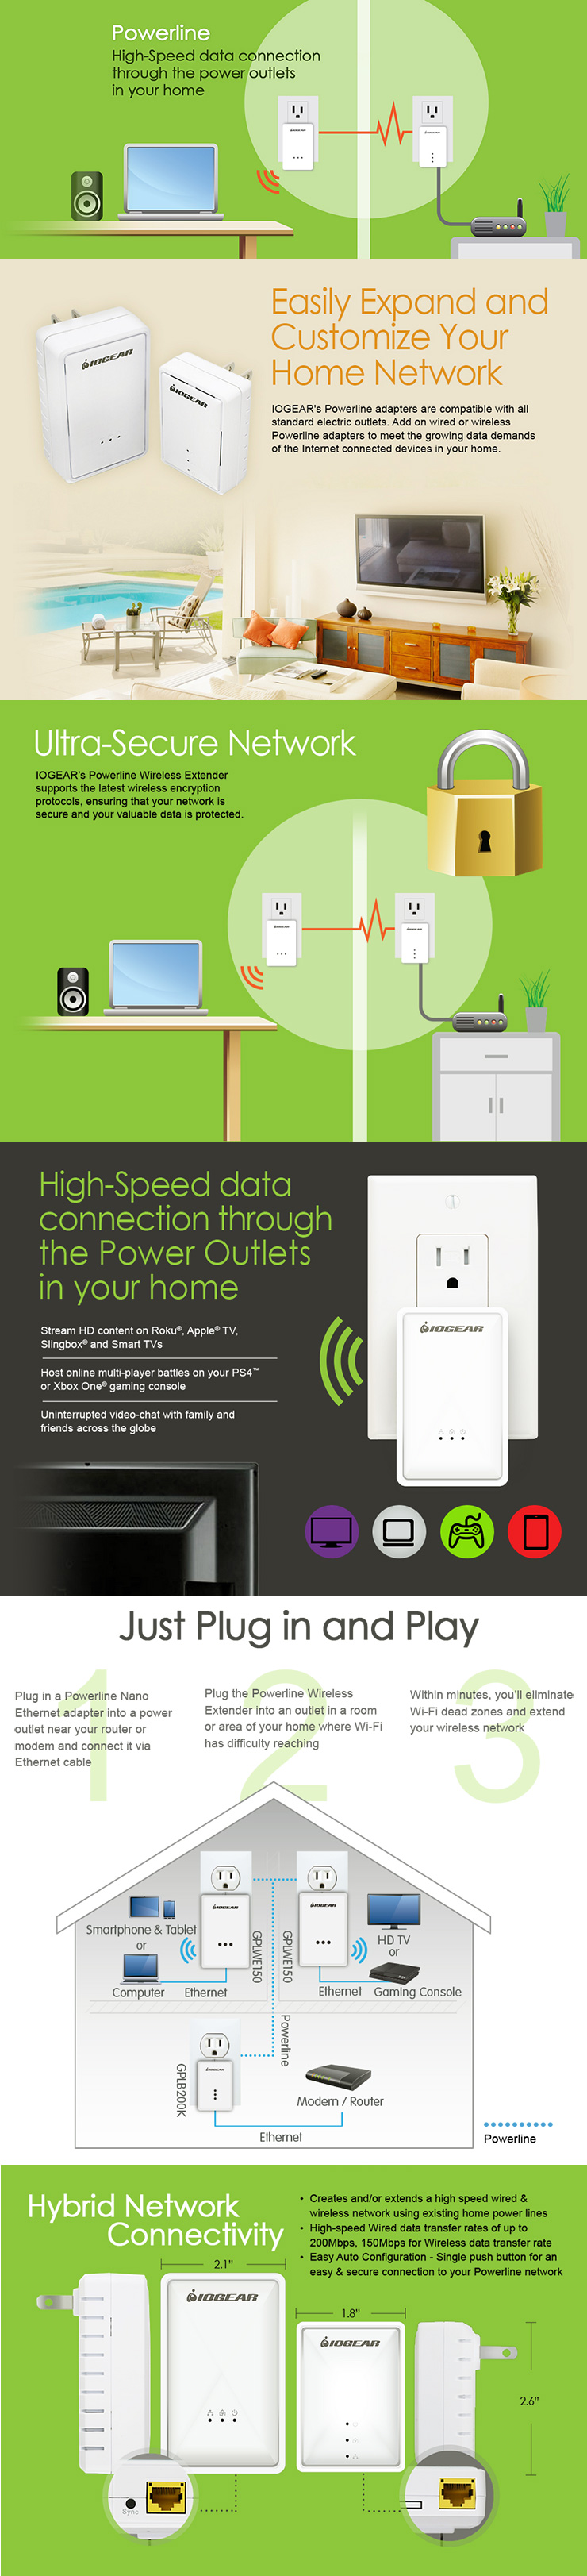 hight resolution of powerline creates a seamless home network without any additional cabling providing fast and reliable wi fi access in every corner of your home